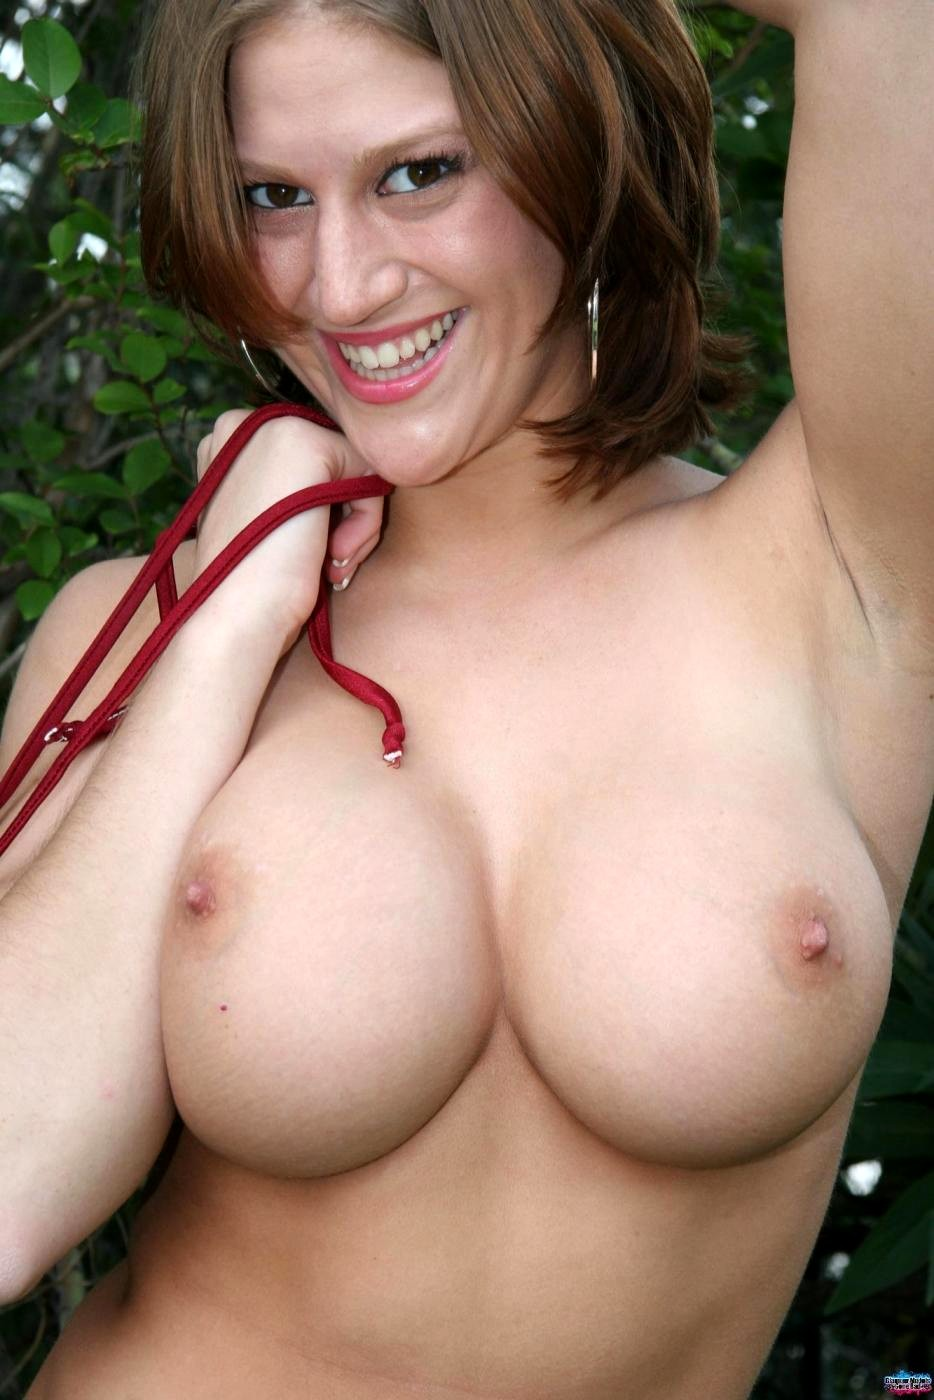 Eve lawrence nude